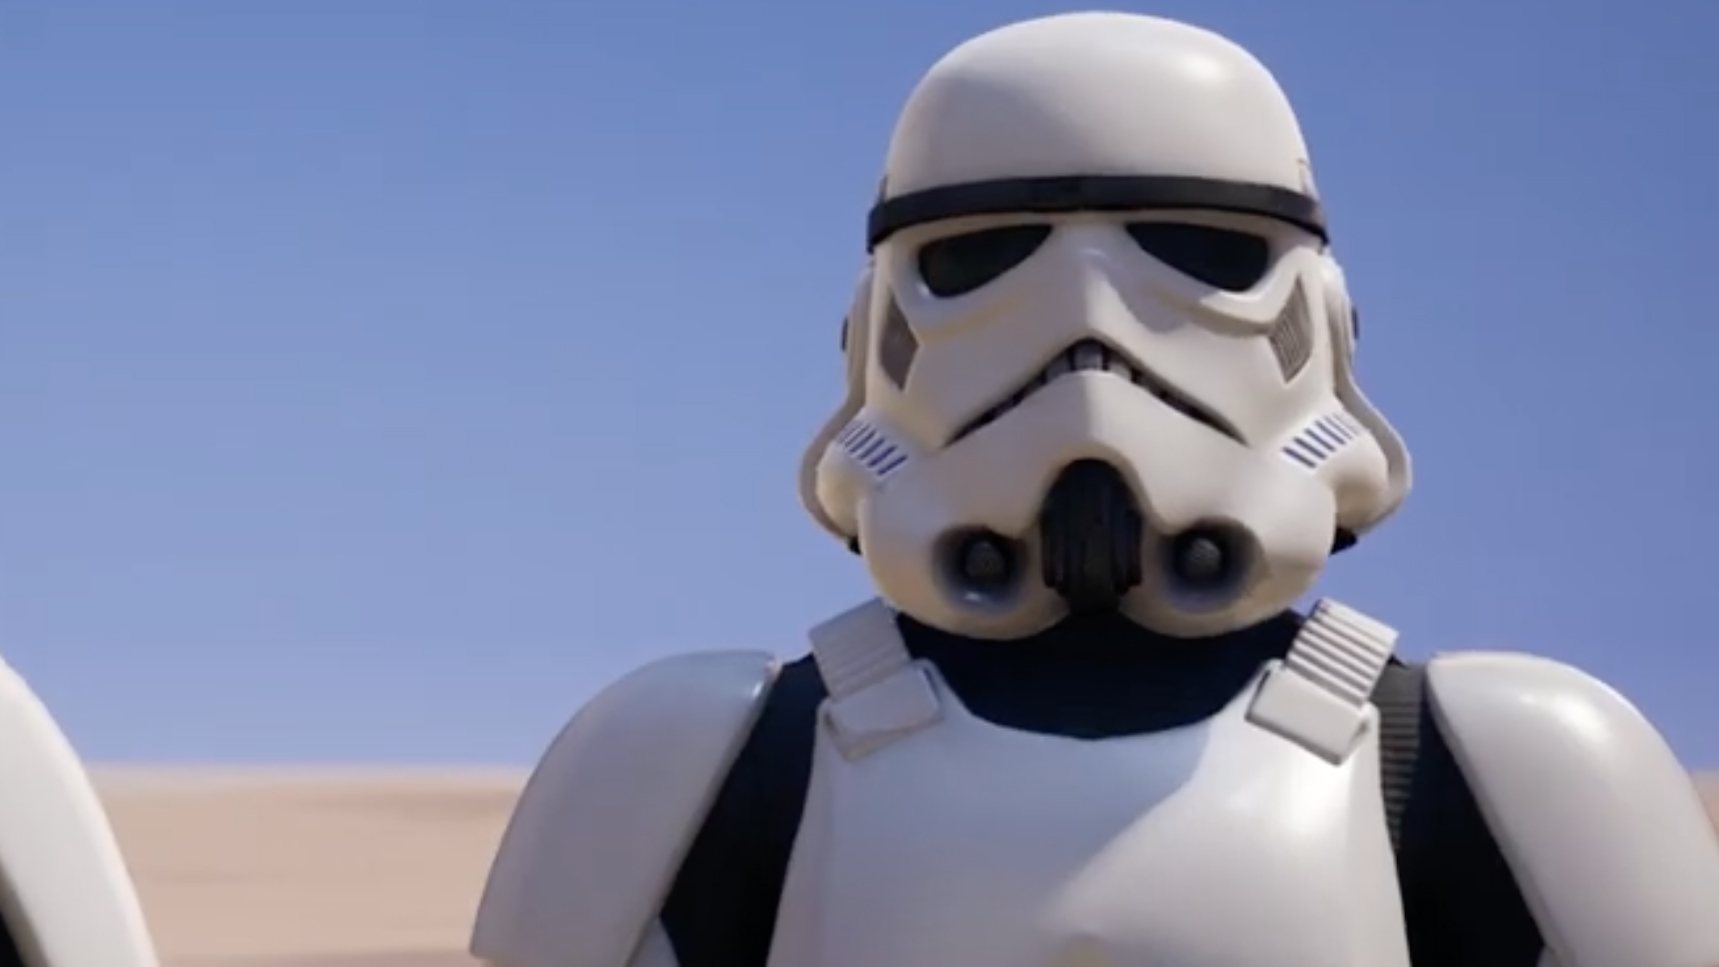 Become a terrible shot with the Fortnite Imperial Stormtrooper skin screenshot